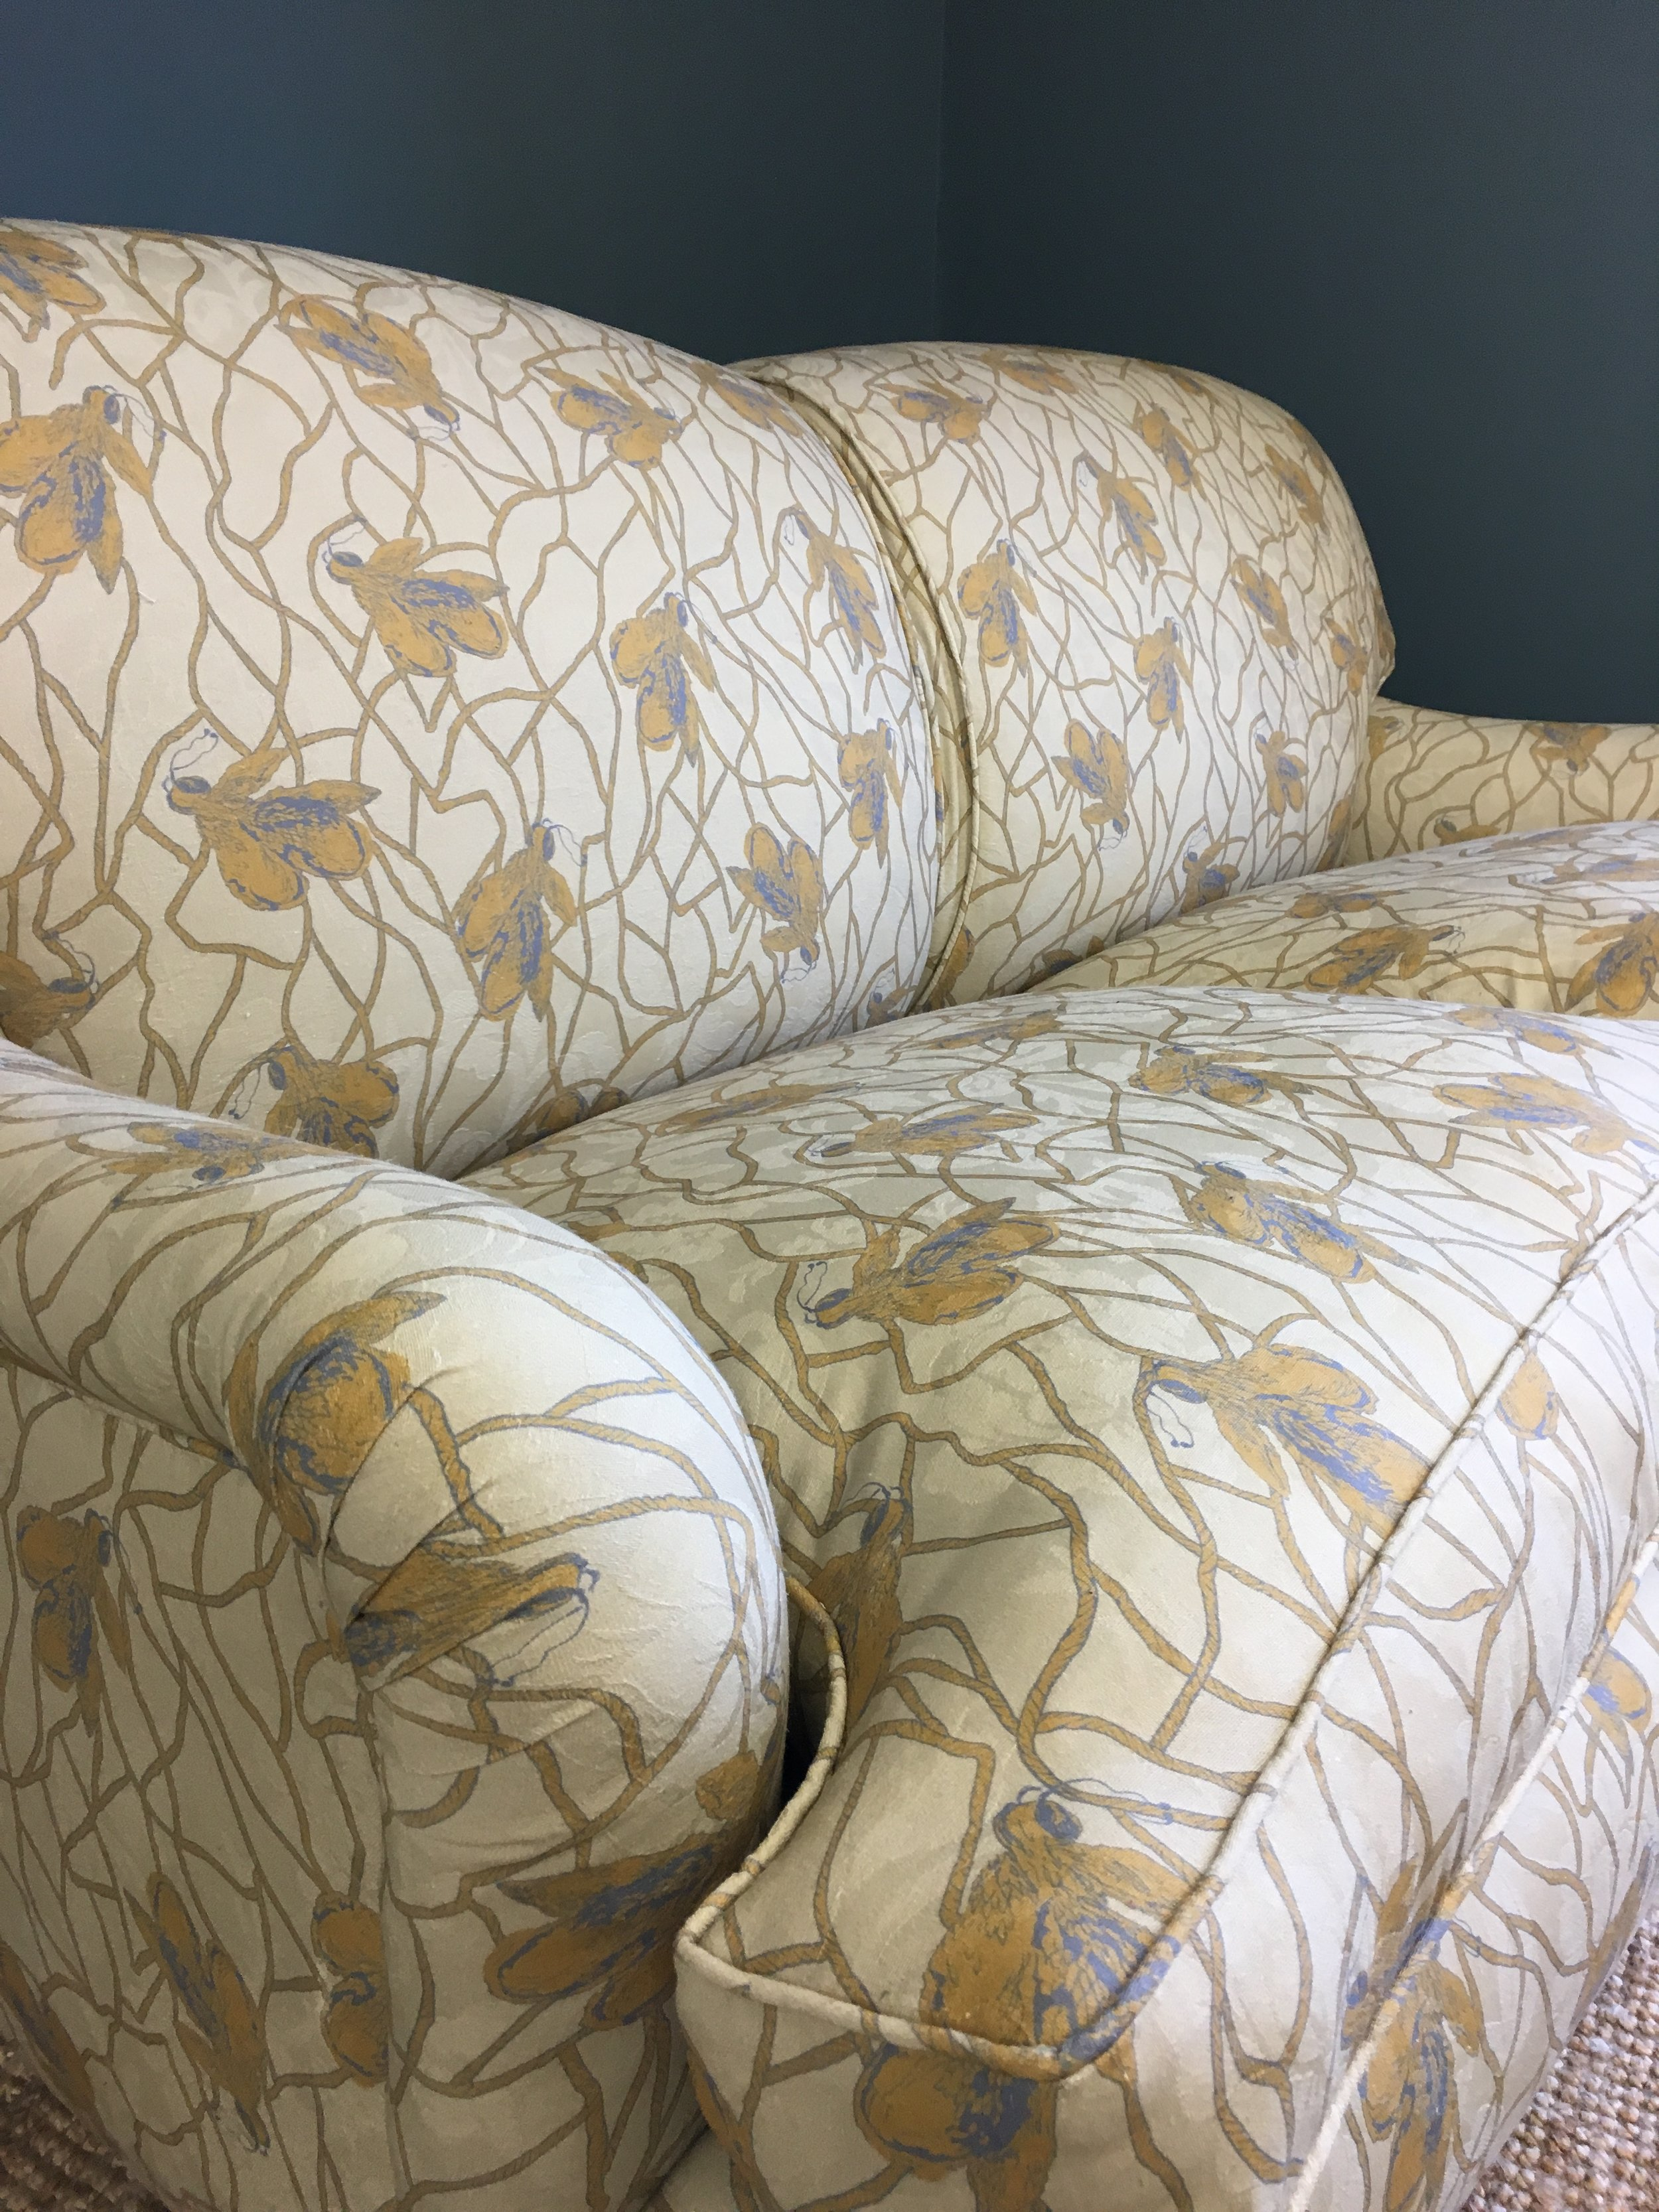 'Queen Bee' fabric by House of Hackney on a George Smith Sofa